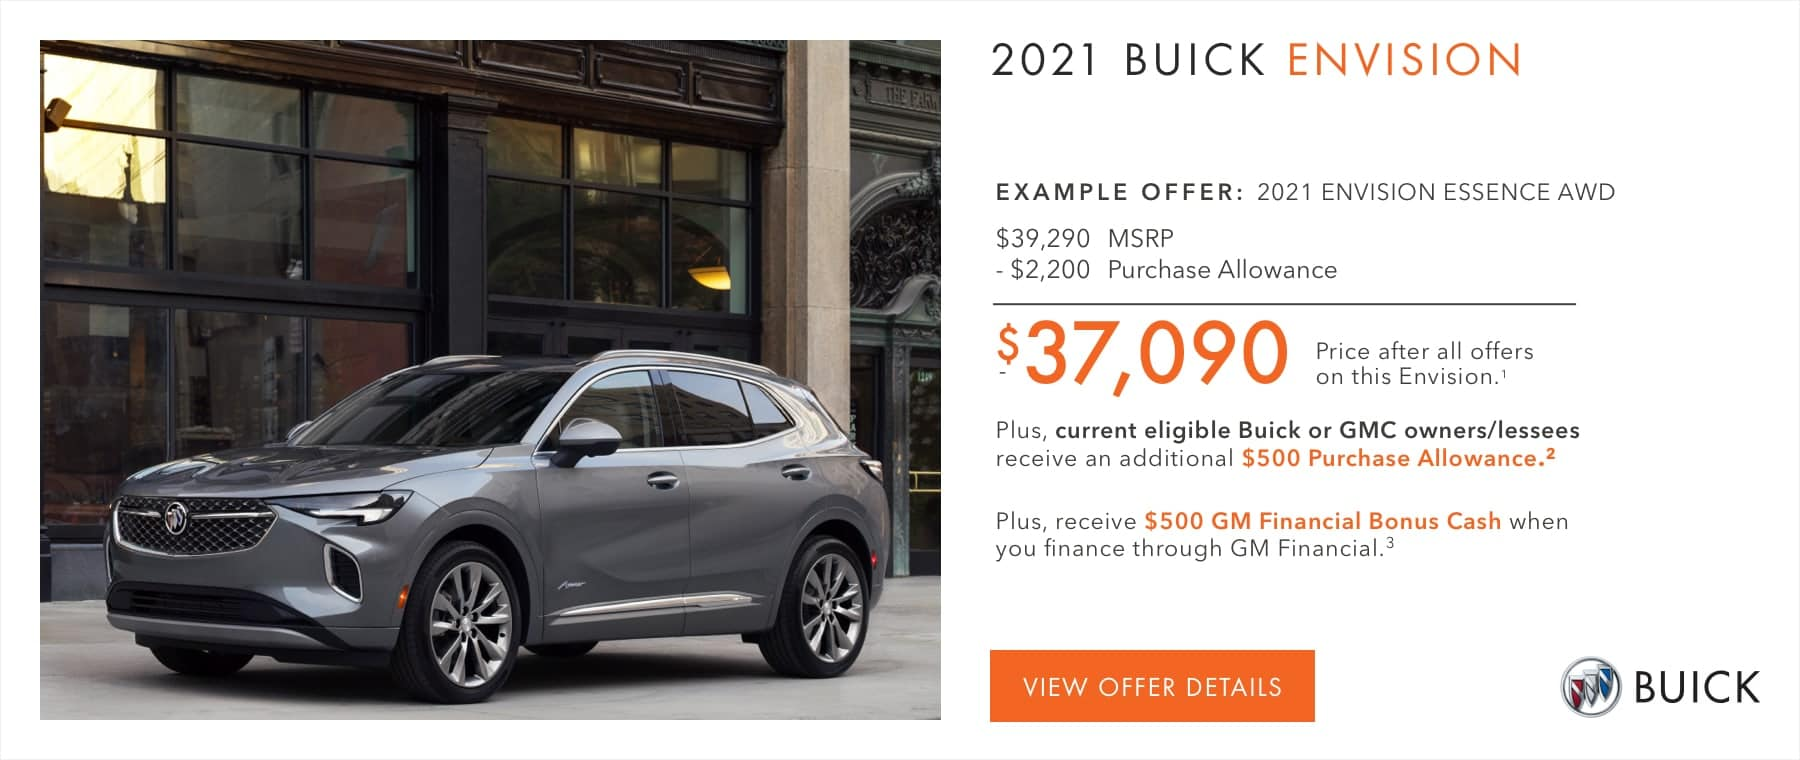 EXAMPLE OFFER: 2021 ENVISION ESSENCE AWD $39,290 MSRP -$2,200 Purchase Allowance $37,090 Price after all offers on this Envision.1 Plus, current eligible Buick or GMC owners/lessees receive an additional $500 Purchase Allowance.2 Plus, receive $500 GM Financial Bonus Cash when you finance through GM Financial.3